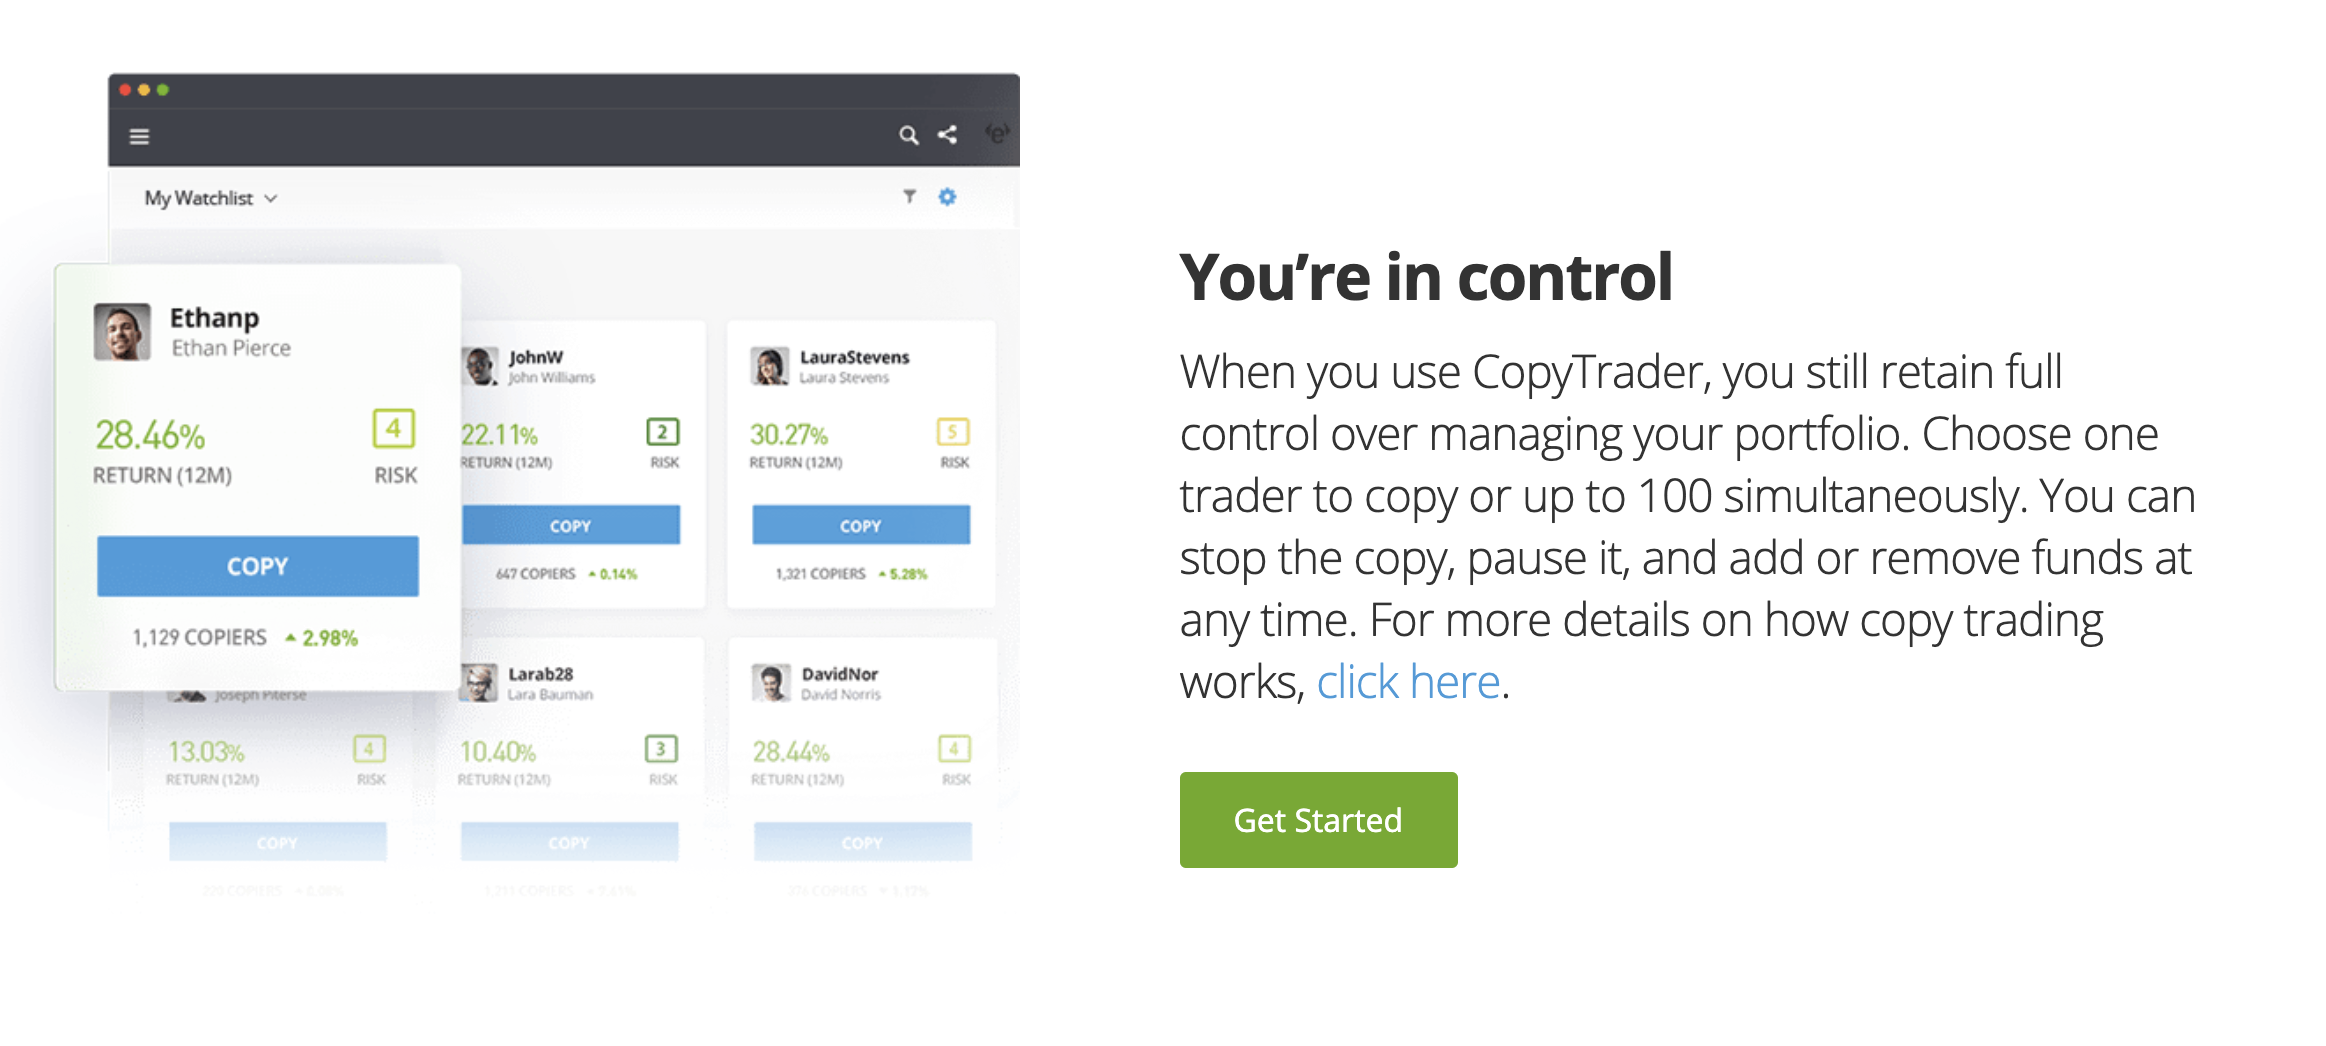 An image from eToro.com showing the thumbnails of popular investors on the app who you can copy the trades of.